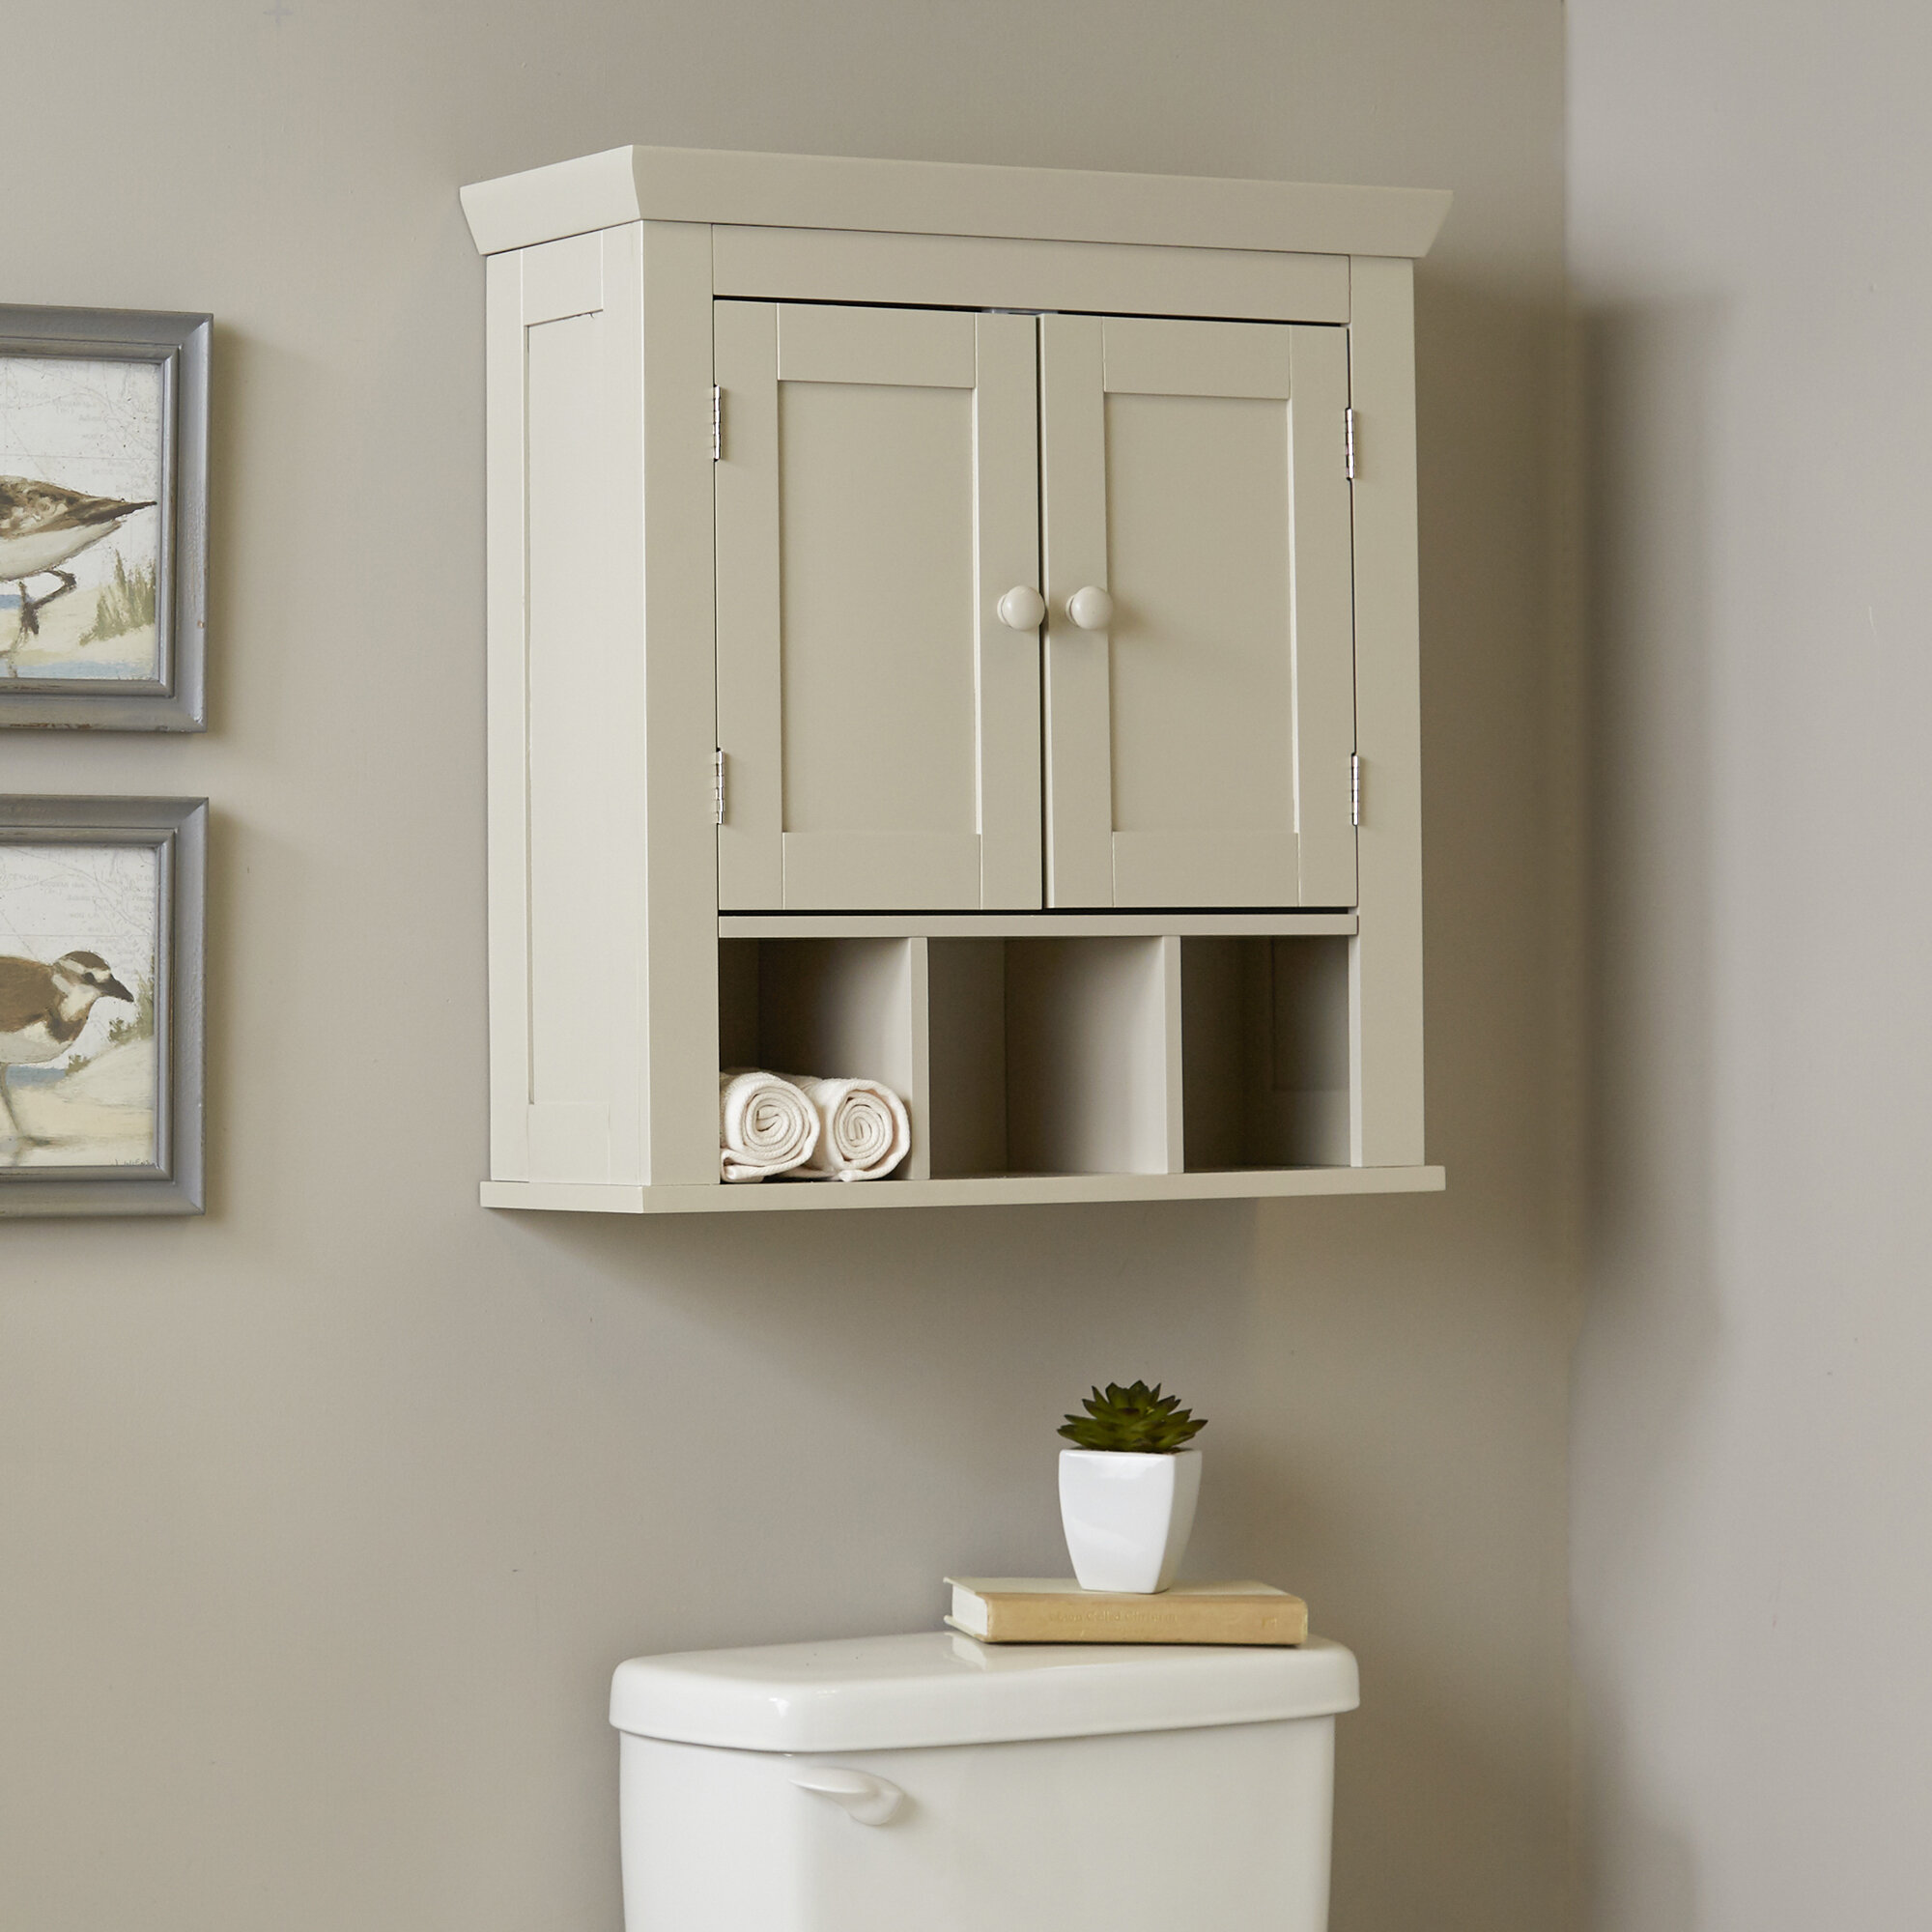 birch lane caraway 224 w x 24 h wall mounted cabinet reviews birch lane - Wall Mounted Bathroom Cabinet